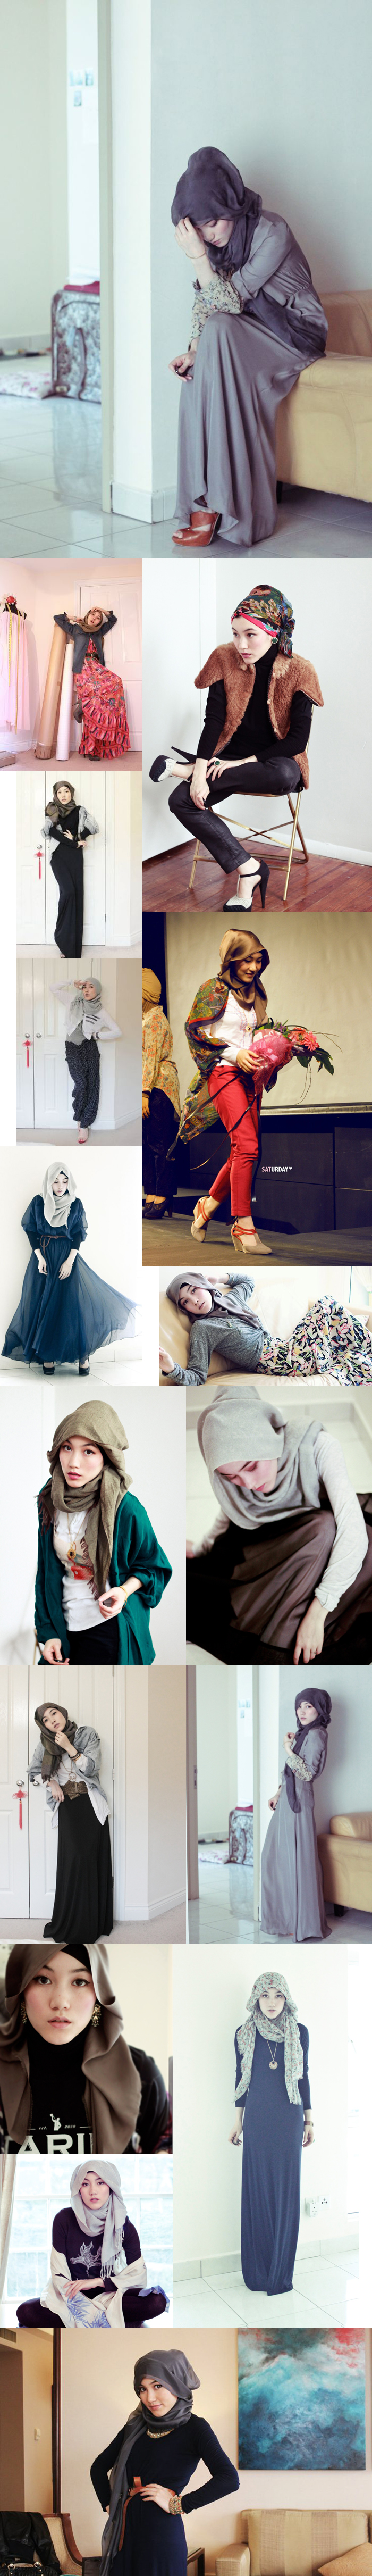 hana tajima, hijab style, her fashion, fashfaith, Muslim fashion